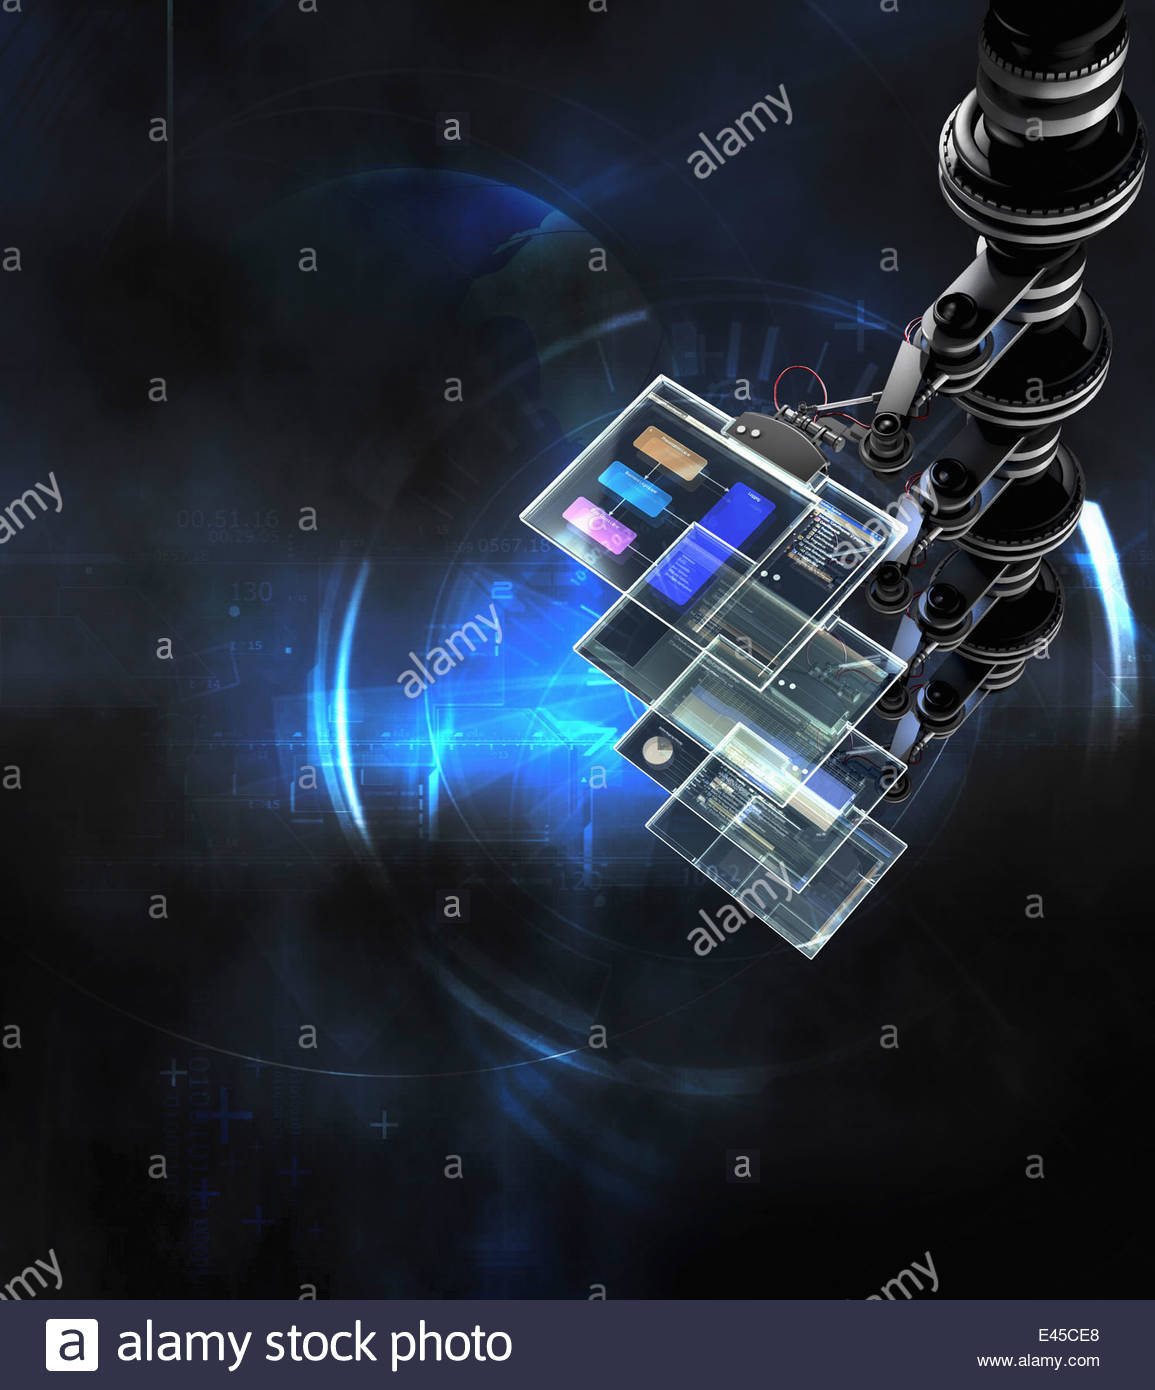 Stack of transparent computer touch screens - Stock Image